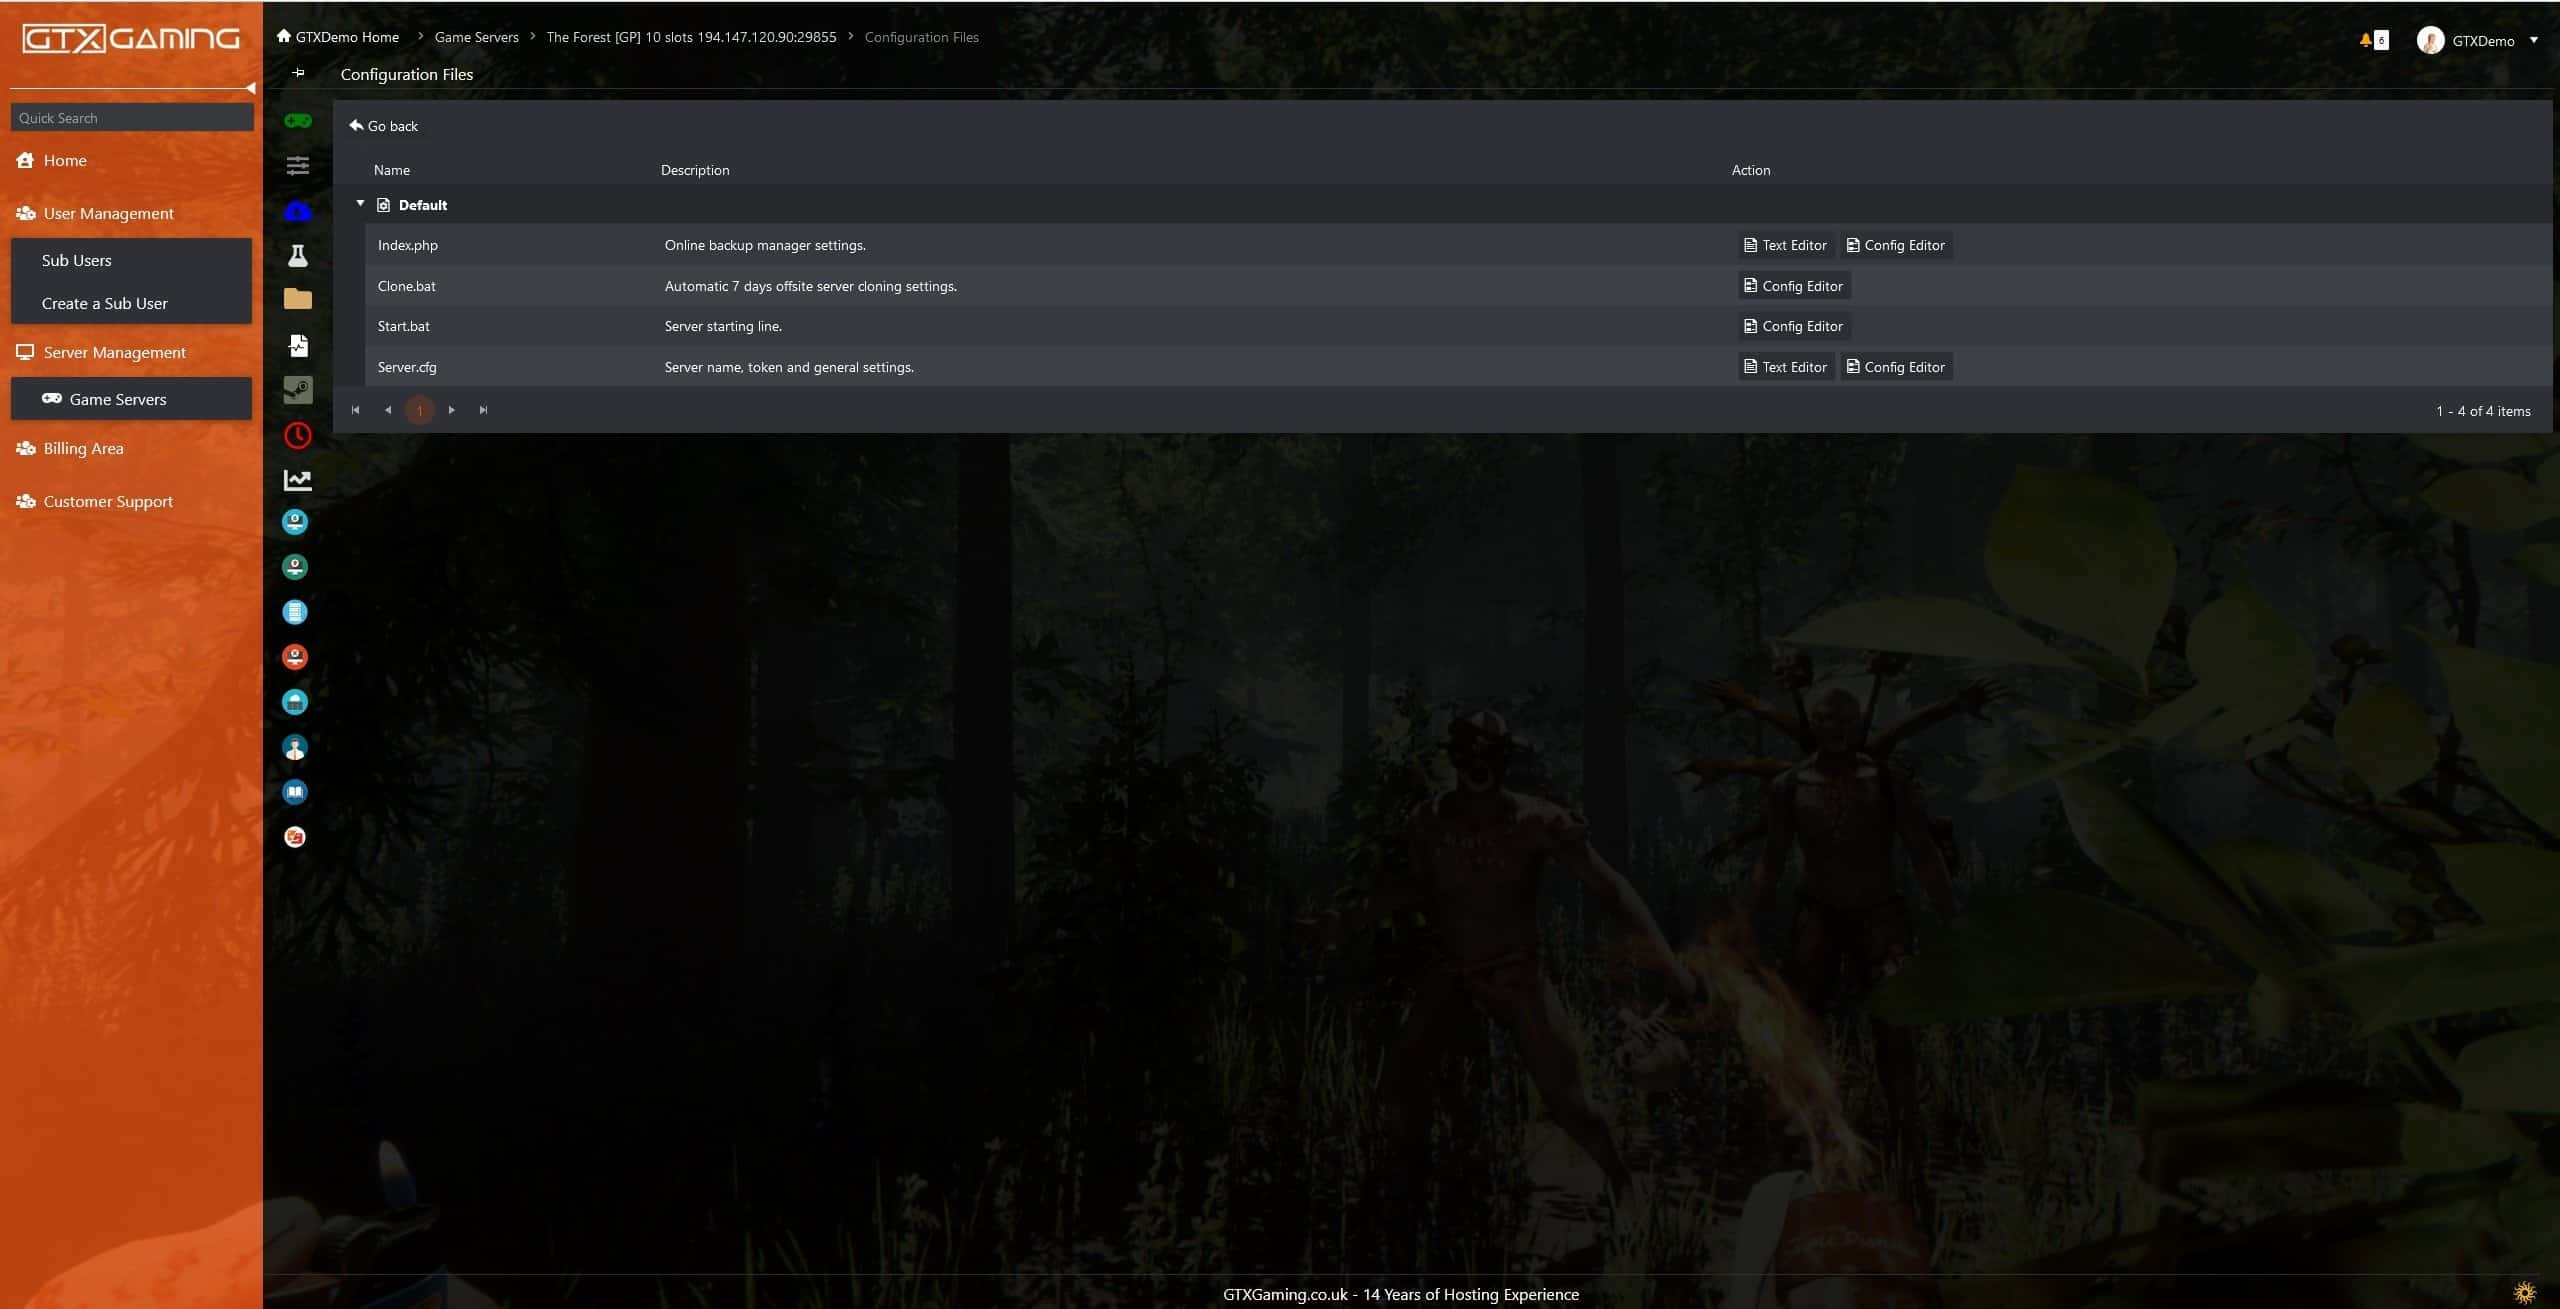 gtx-gaming-gamepanel-2-the-forest